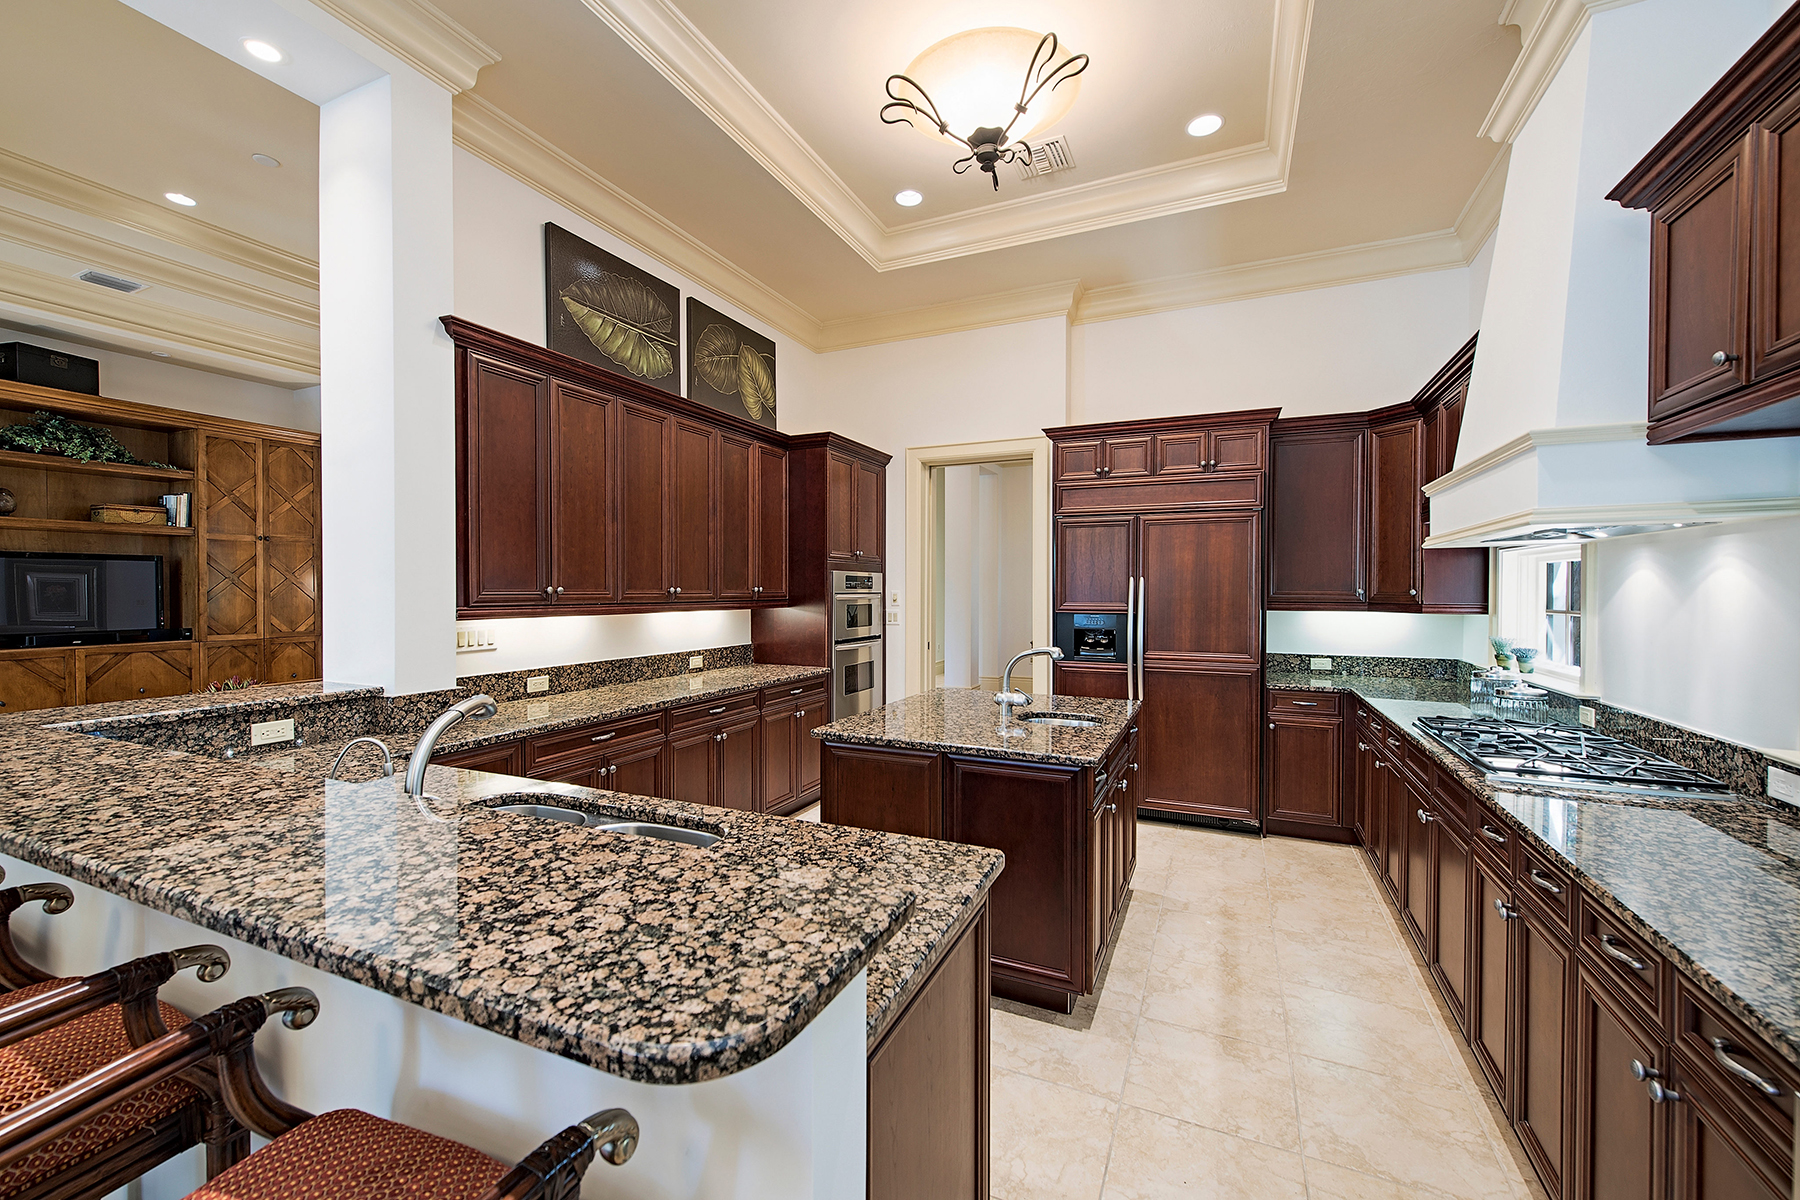 Additional photo for property listing at 1505 Marsh Wren Ln , Naples, FL 34105 1505  Marsh Wren Ln,  Naples, Florida 34105 United States